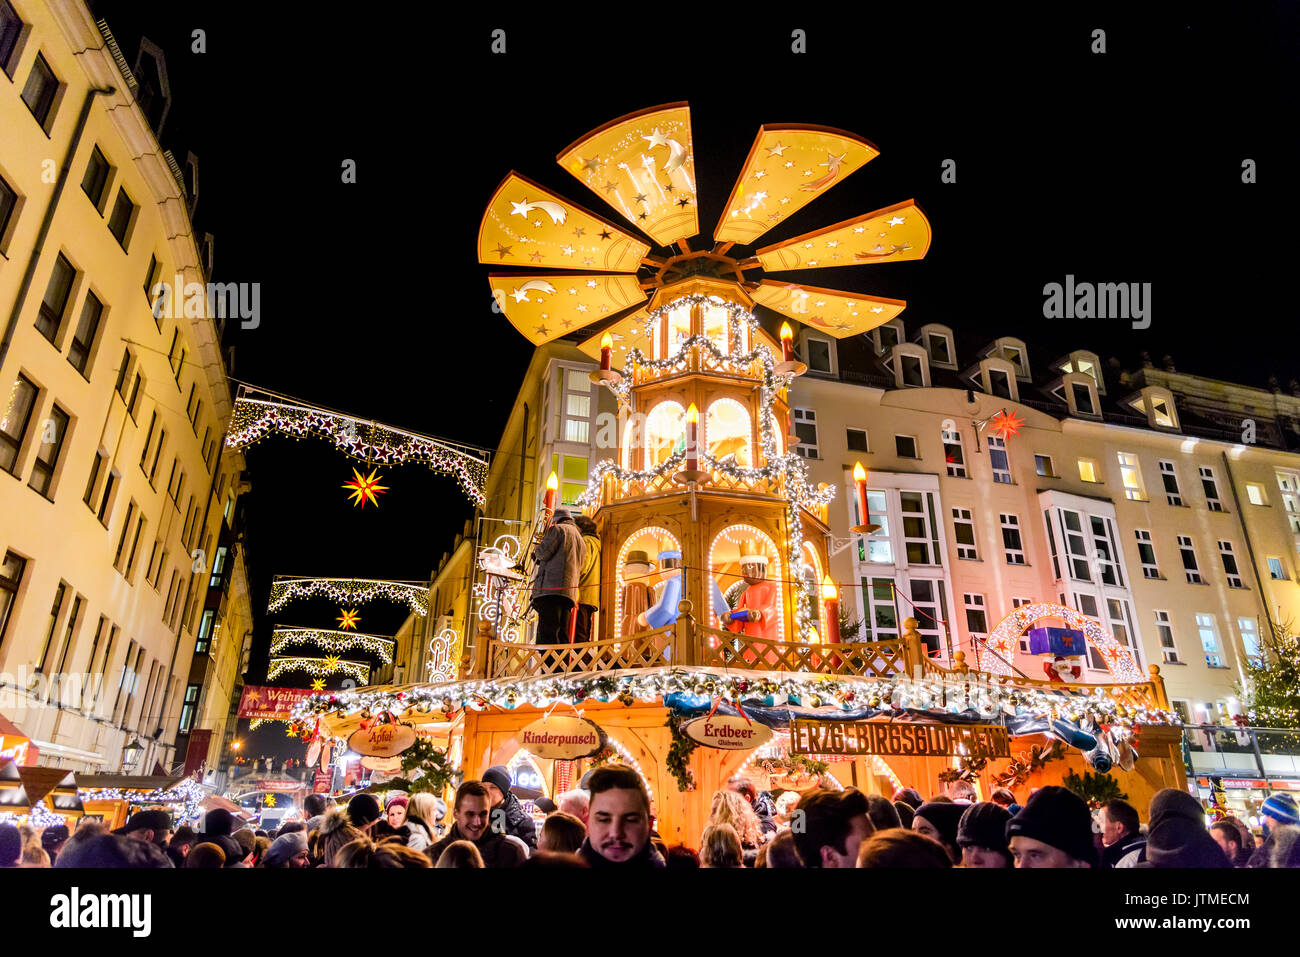 DRESDEN, SAXONY / GERMANY -  17 DECEMBER 2016: People visit Christmas Markets in Dresden, Germany. Christmas fair, European traditions for Xmas. - Stock Image